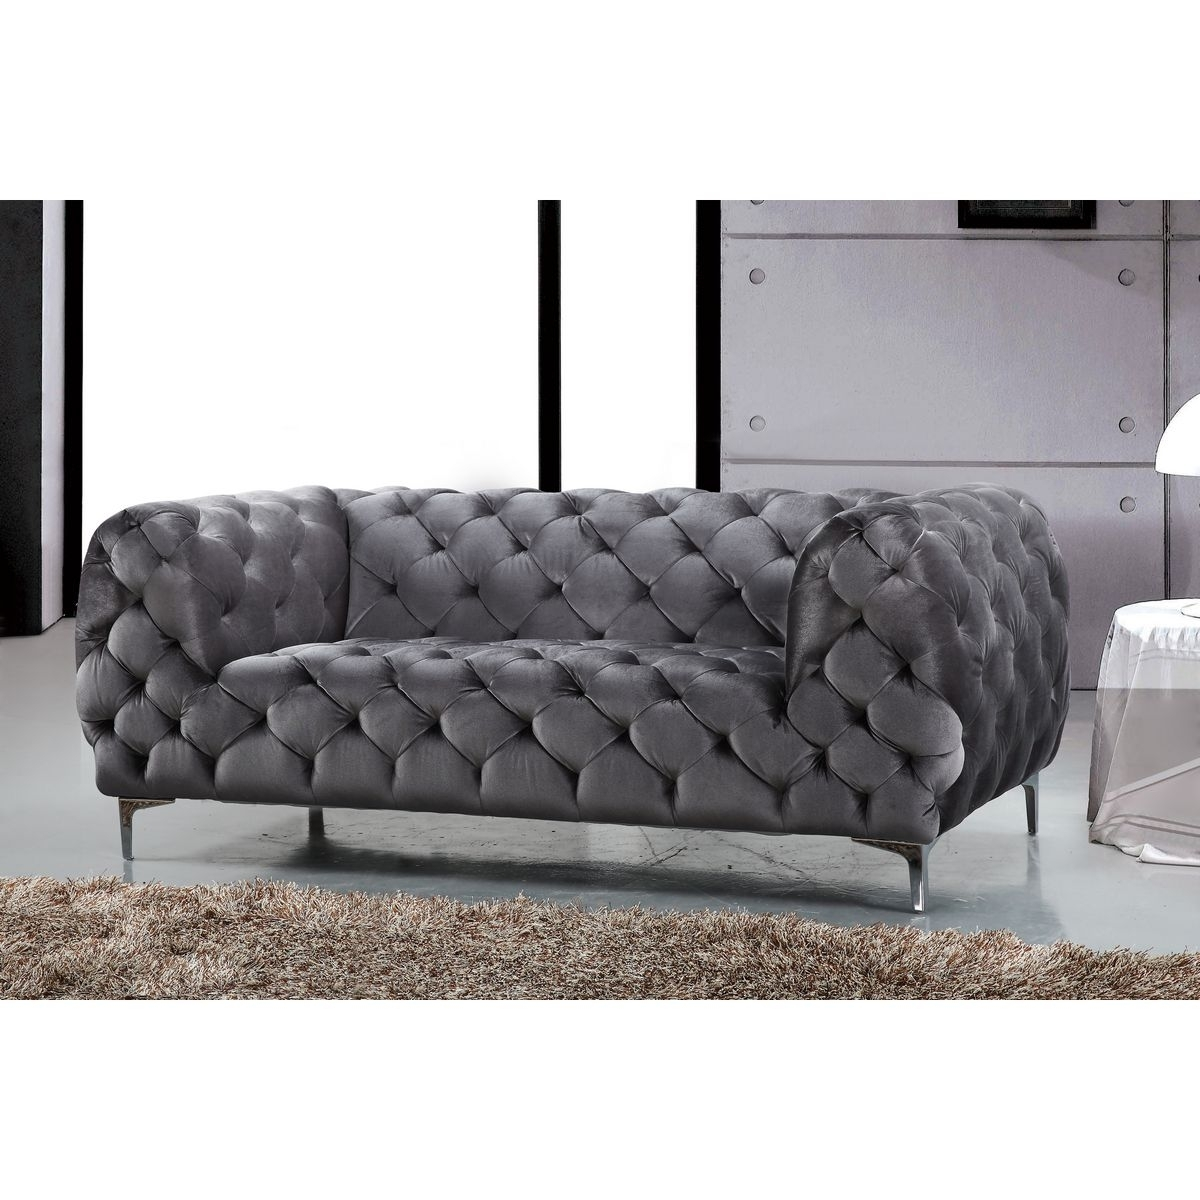 ergonomic chair kijiji koala fishing 10 ideas of london sectional sofas